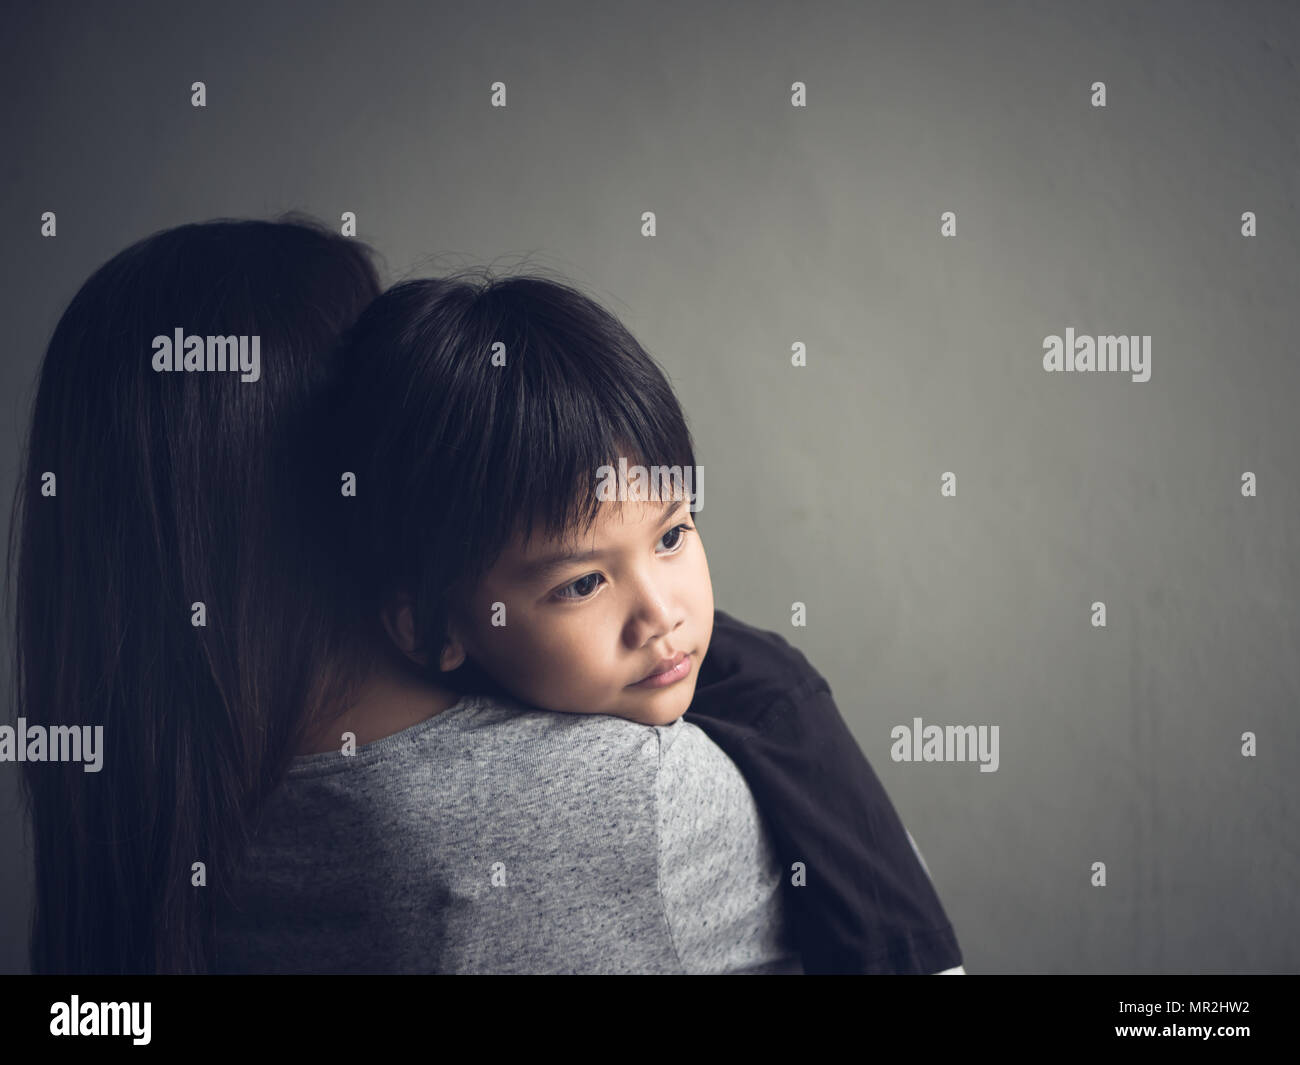 Closeup Sad Little Boy Being Hugged By His Mother At Home Parenthood Love And Togetherness Concept Stock Photo Alamy